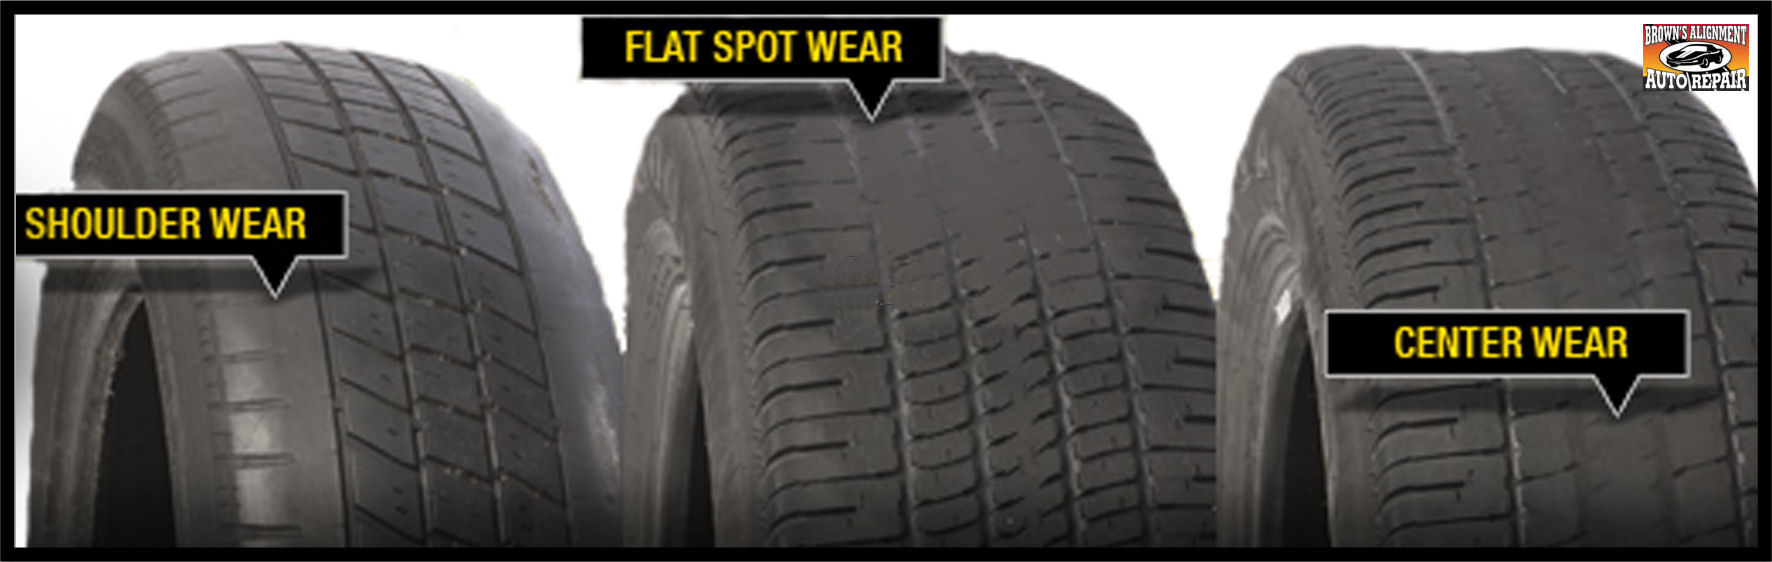 Best All Weather Tires >> Tire Wear - Brown's Alignment Auto Repair Brown's Alignment Auto Repair